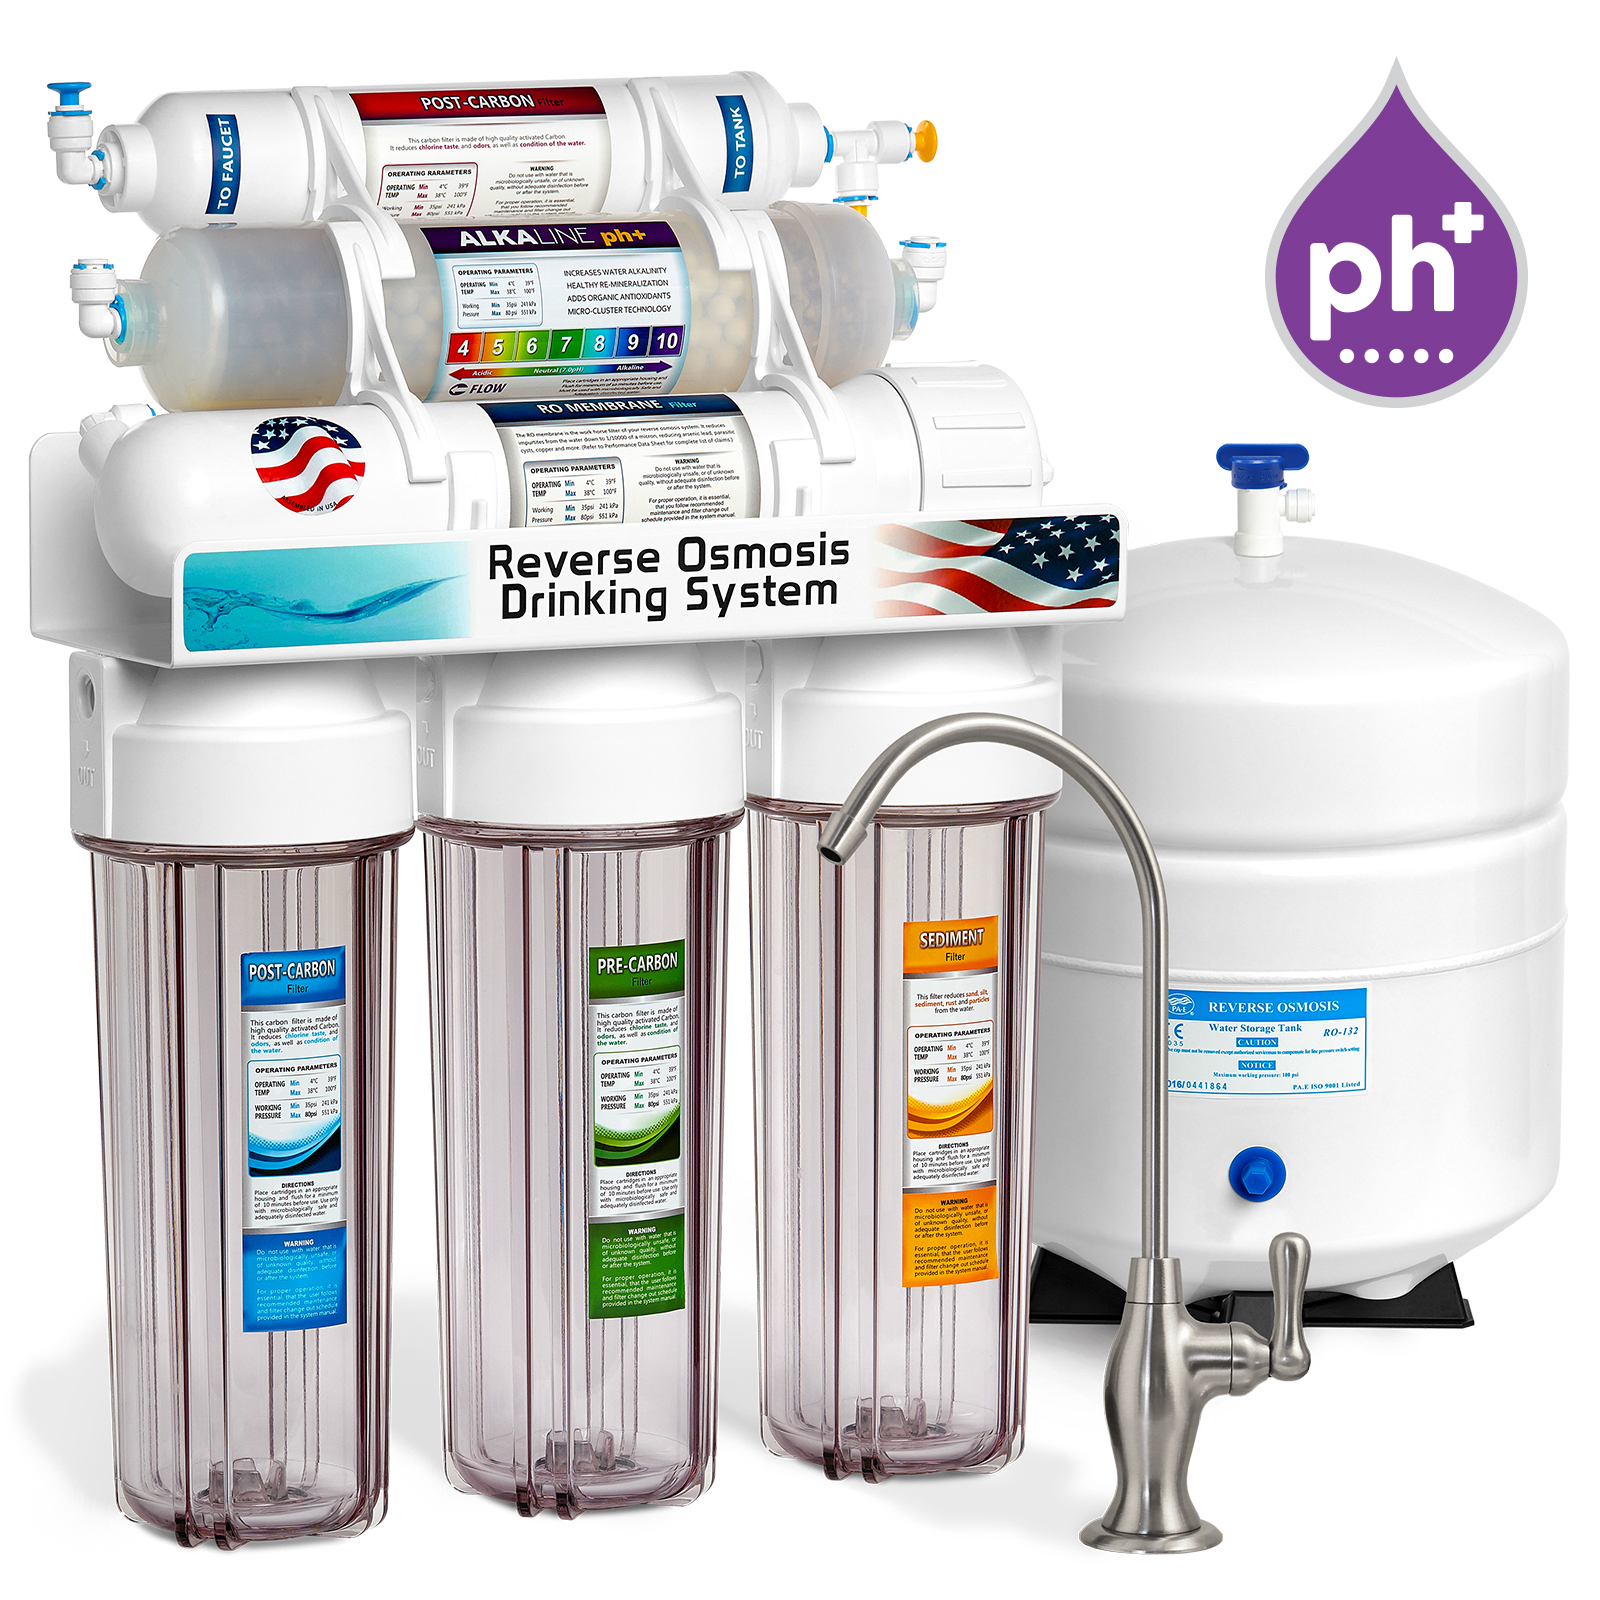 Express Water 10-Stage Alkaline Remineralization Reverse Osmosis RO Water Filter System, 50 GPD, Clear, Brushed Nickel (Deluxe)